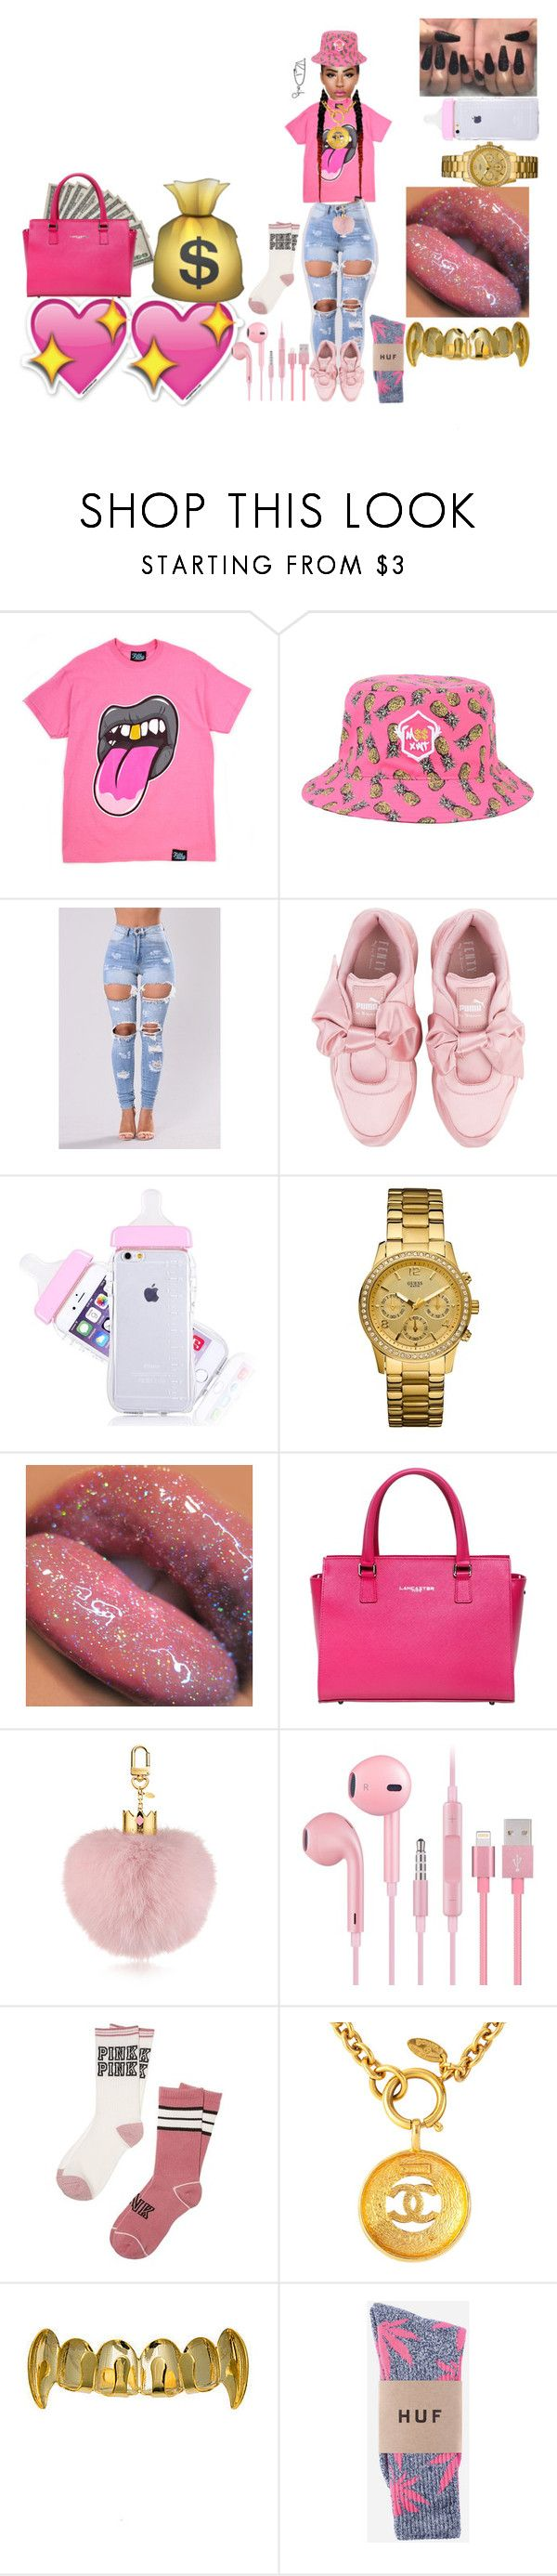 """""""Outfits for today#1"""" by kisha1891010 ❤ liked on Polyvore featuring Puma, GUESS, Lancaster, Victoria's Secret, Susan Caplan Vintage and HUF"""